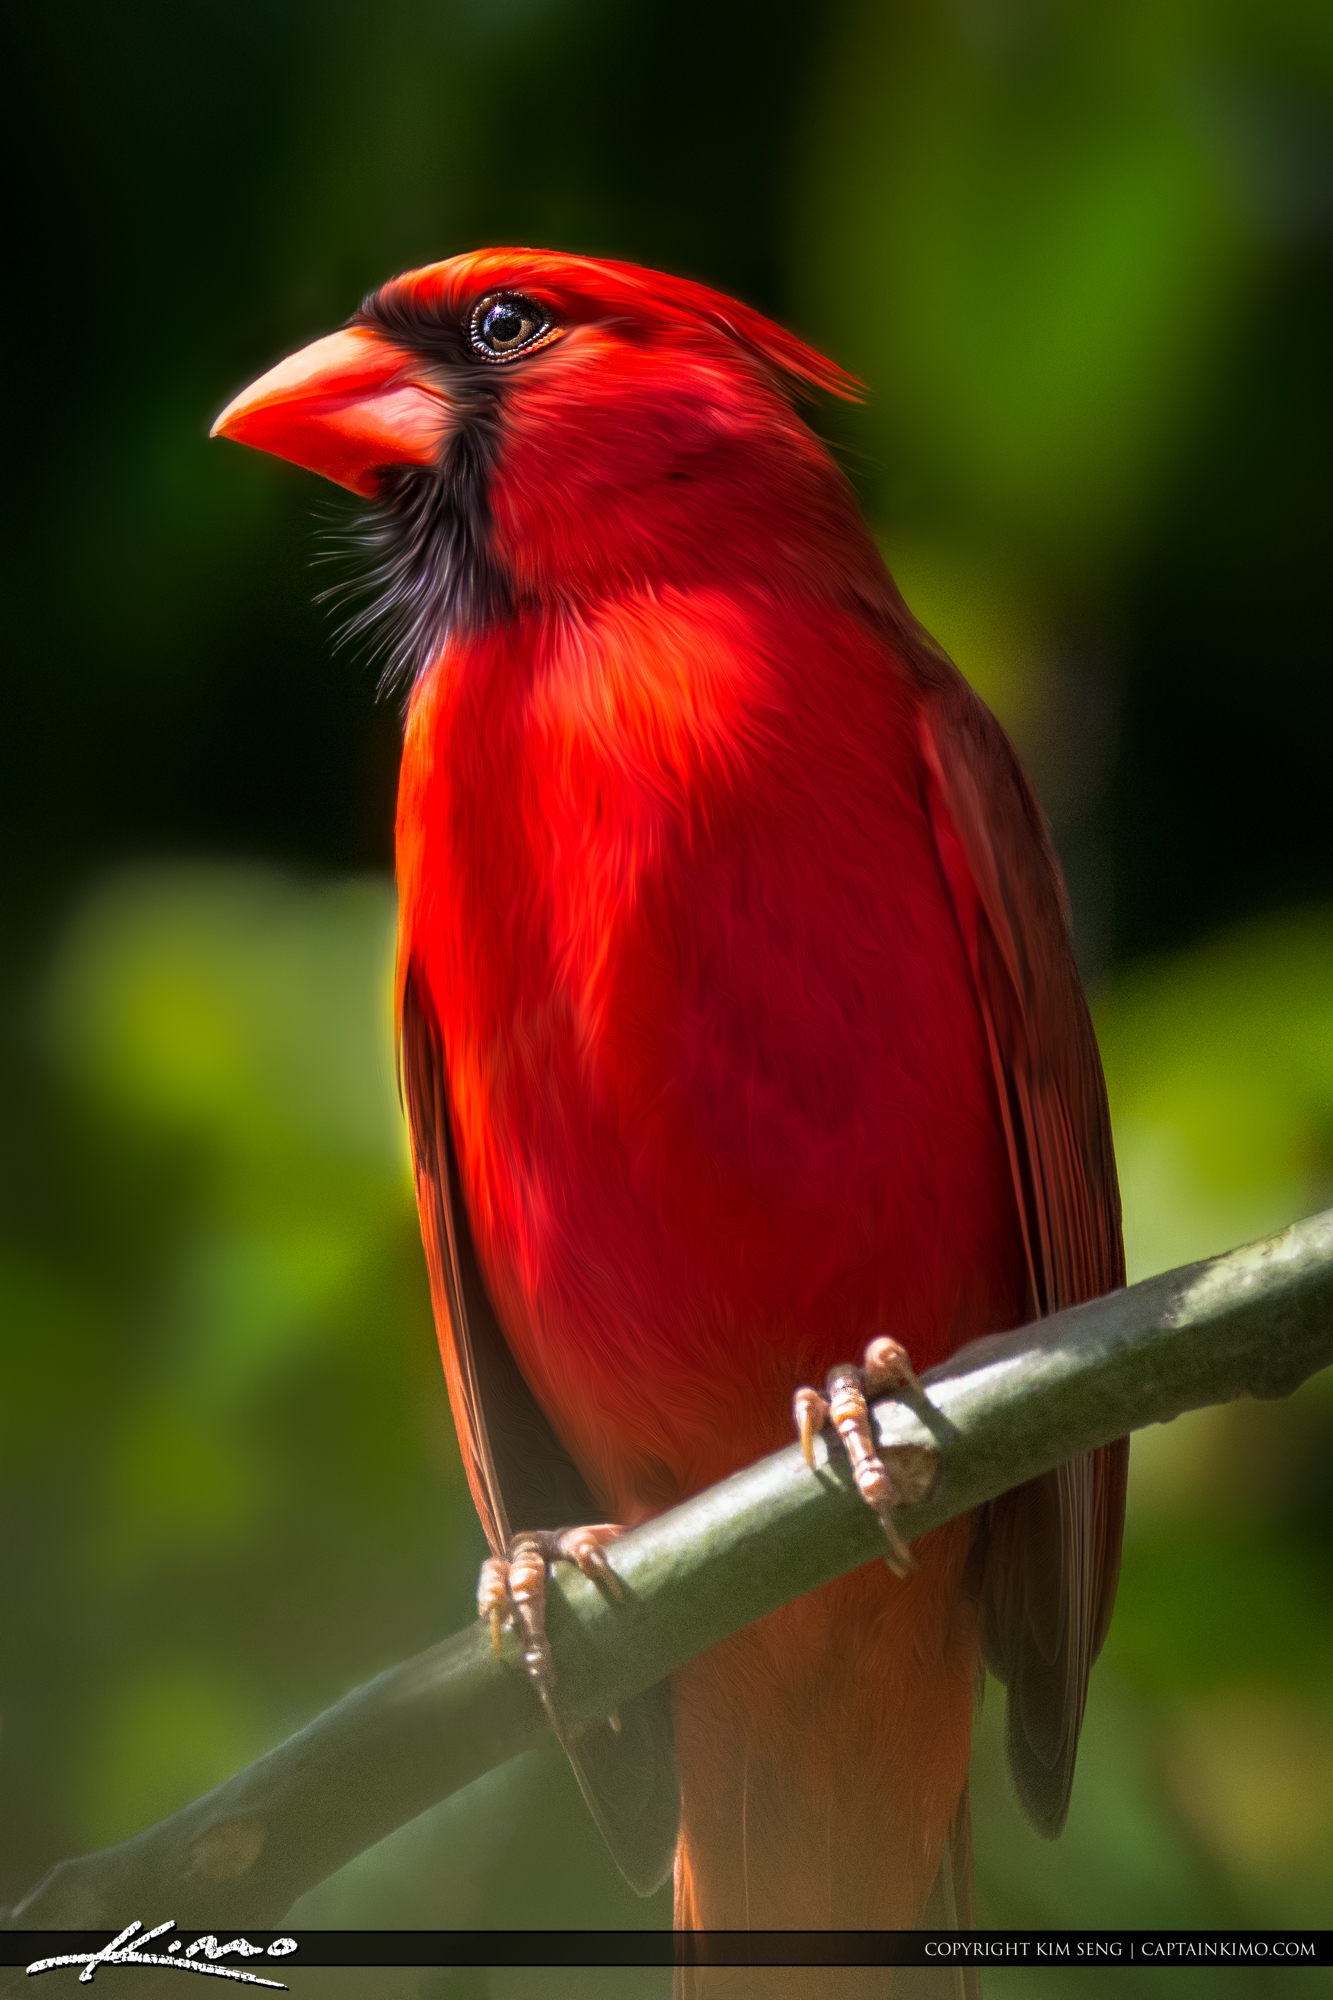 Red Cardinal Perched on Branch with Beautiful Light